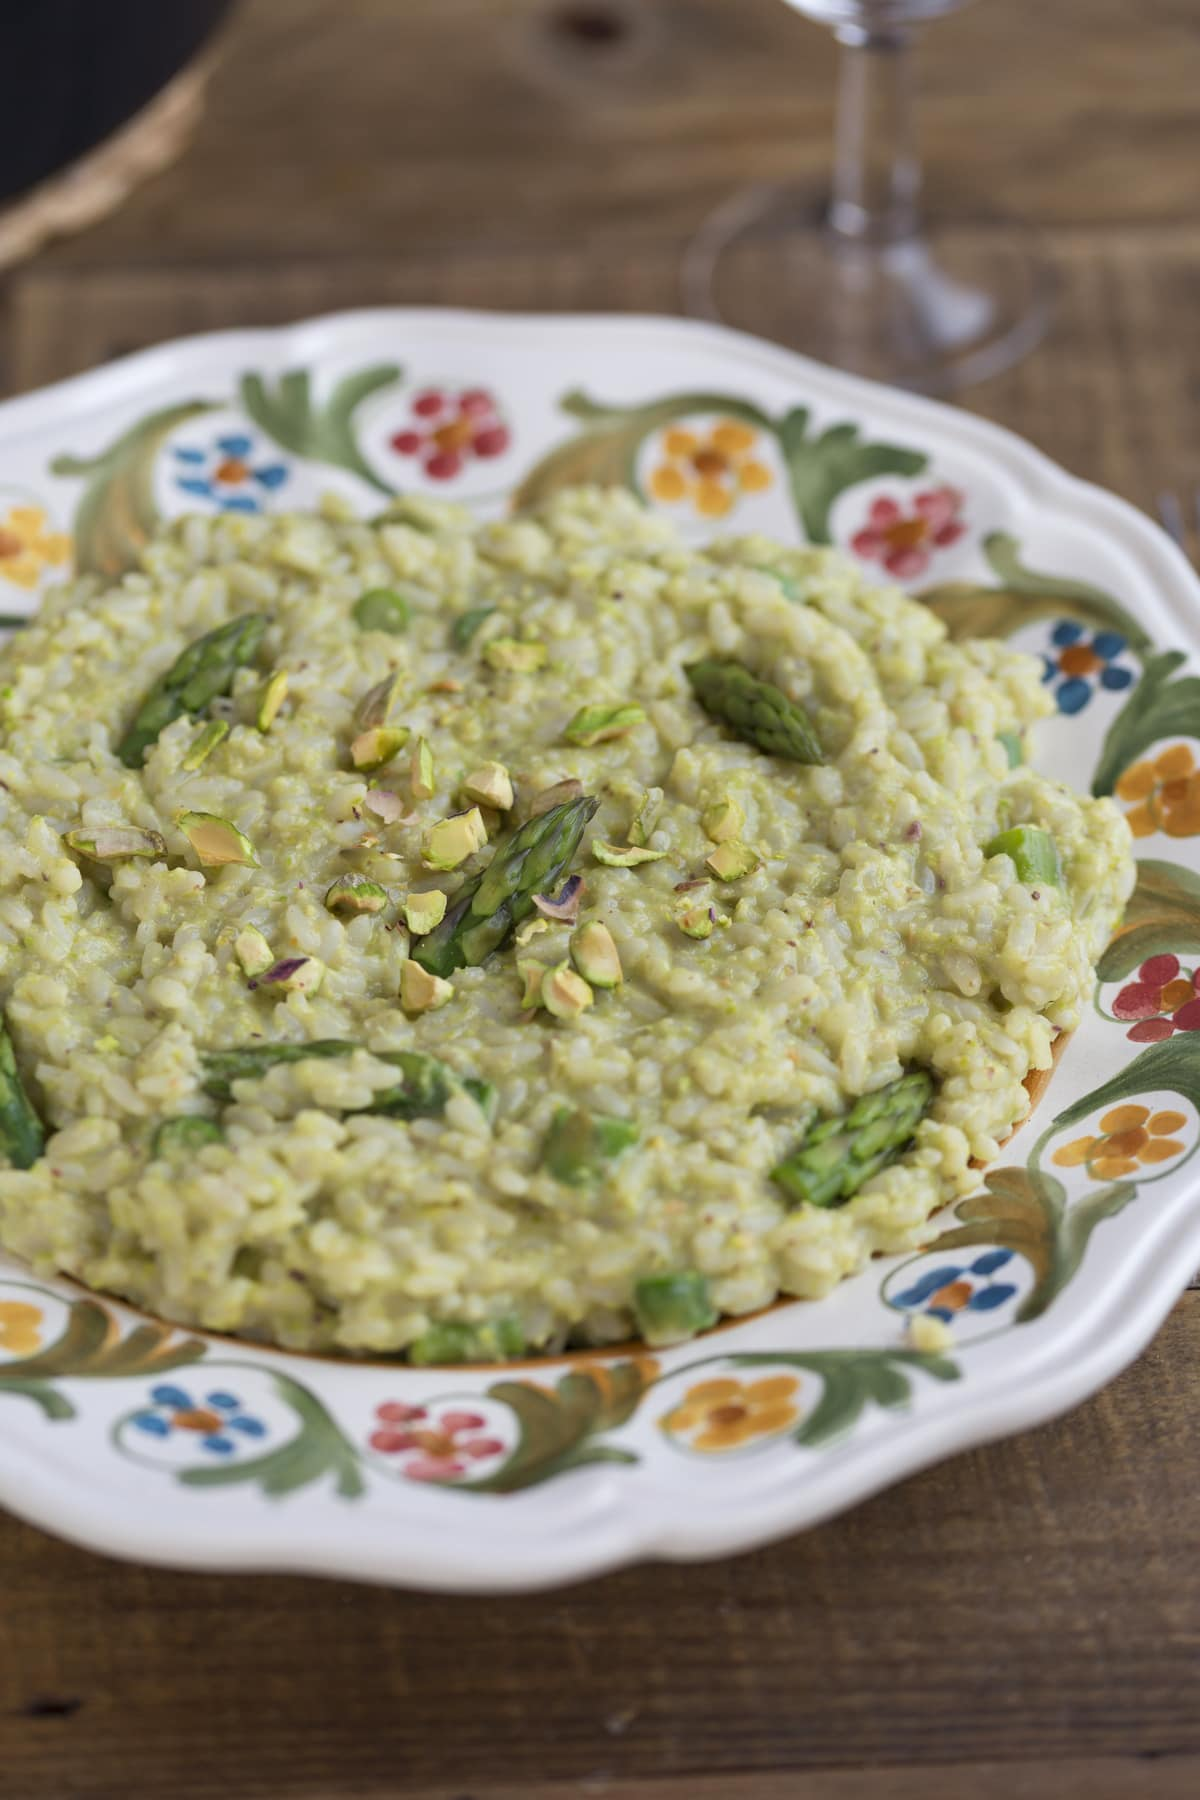 Pistachio asparagus risotto served on a decorated plate.